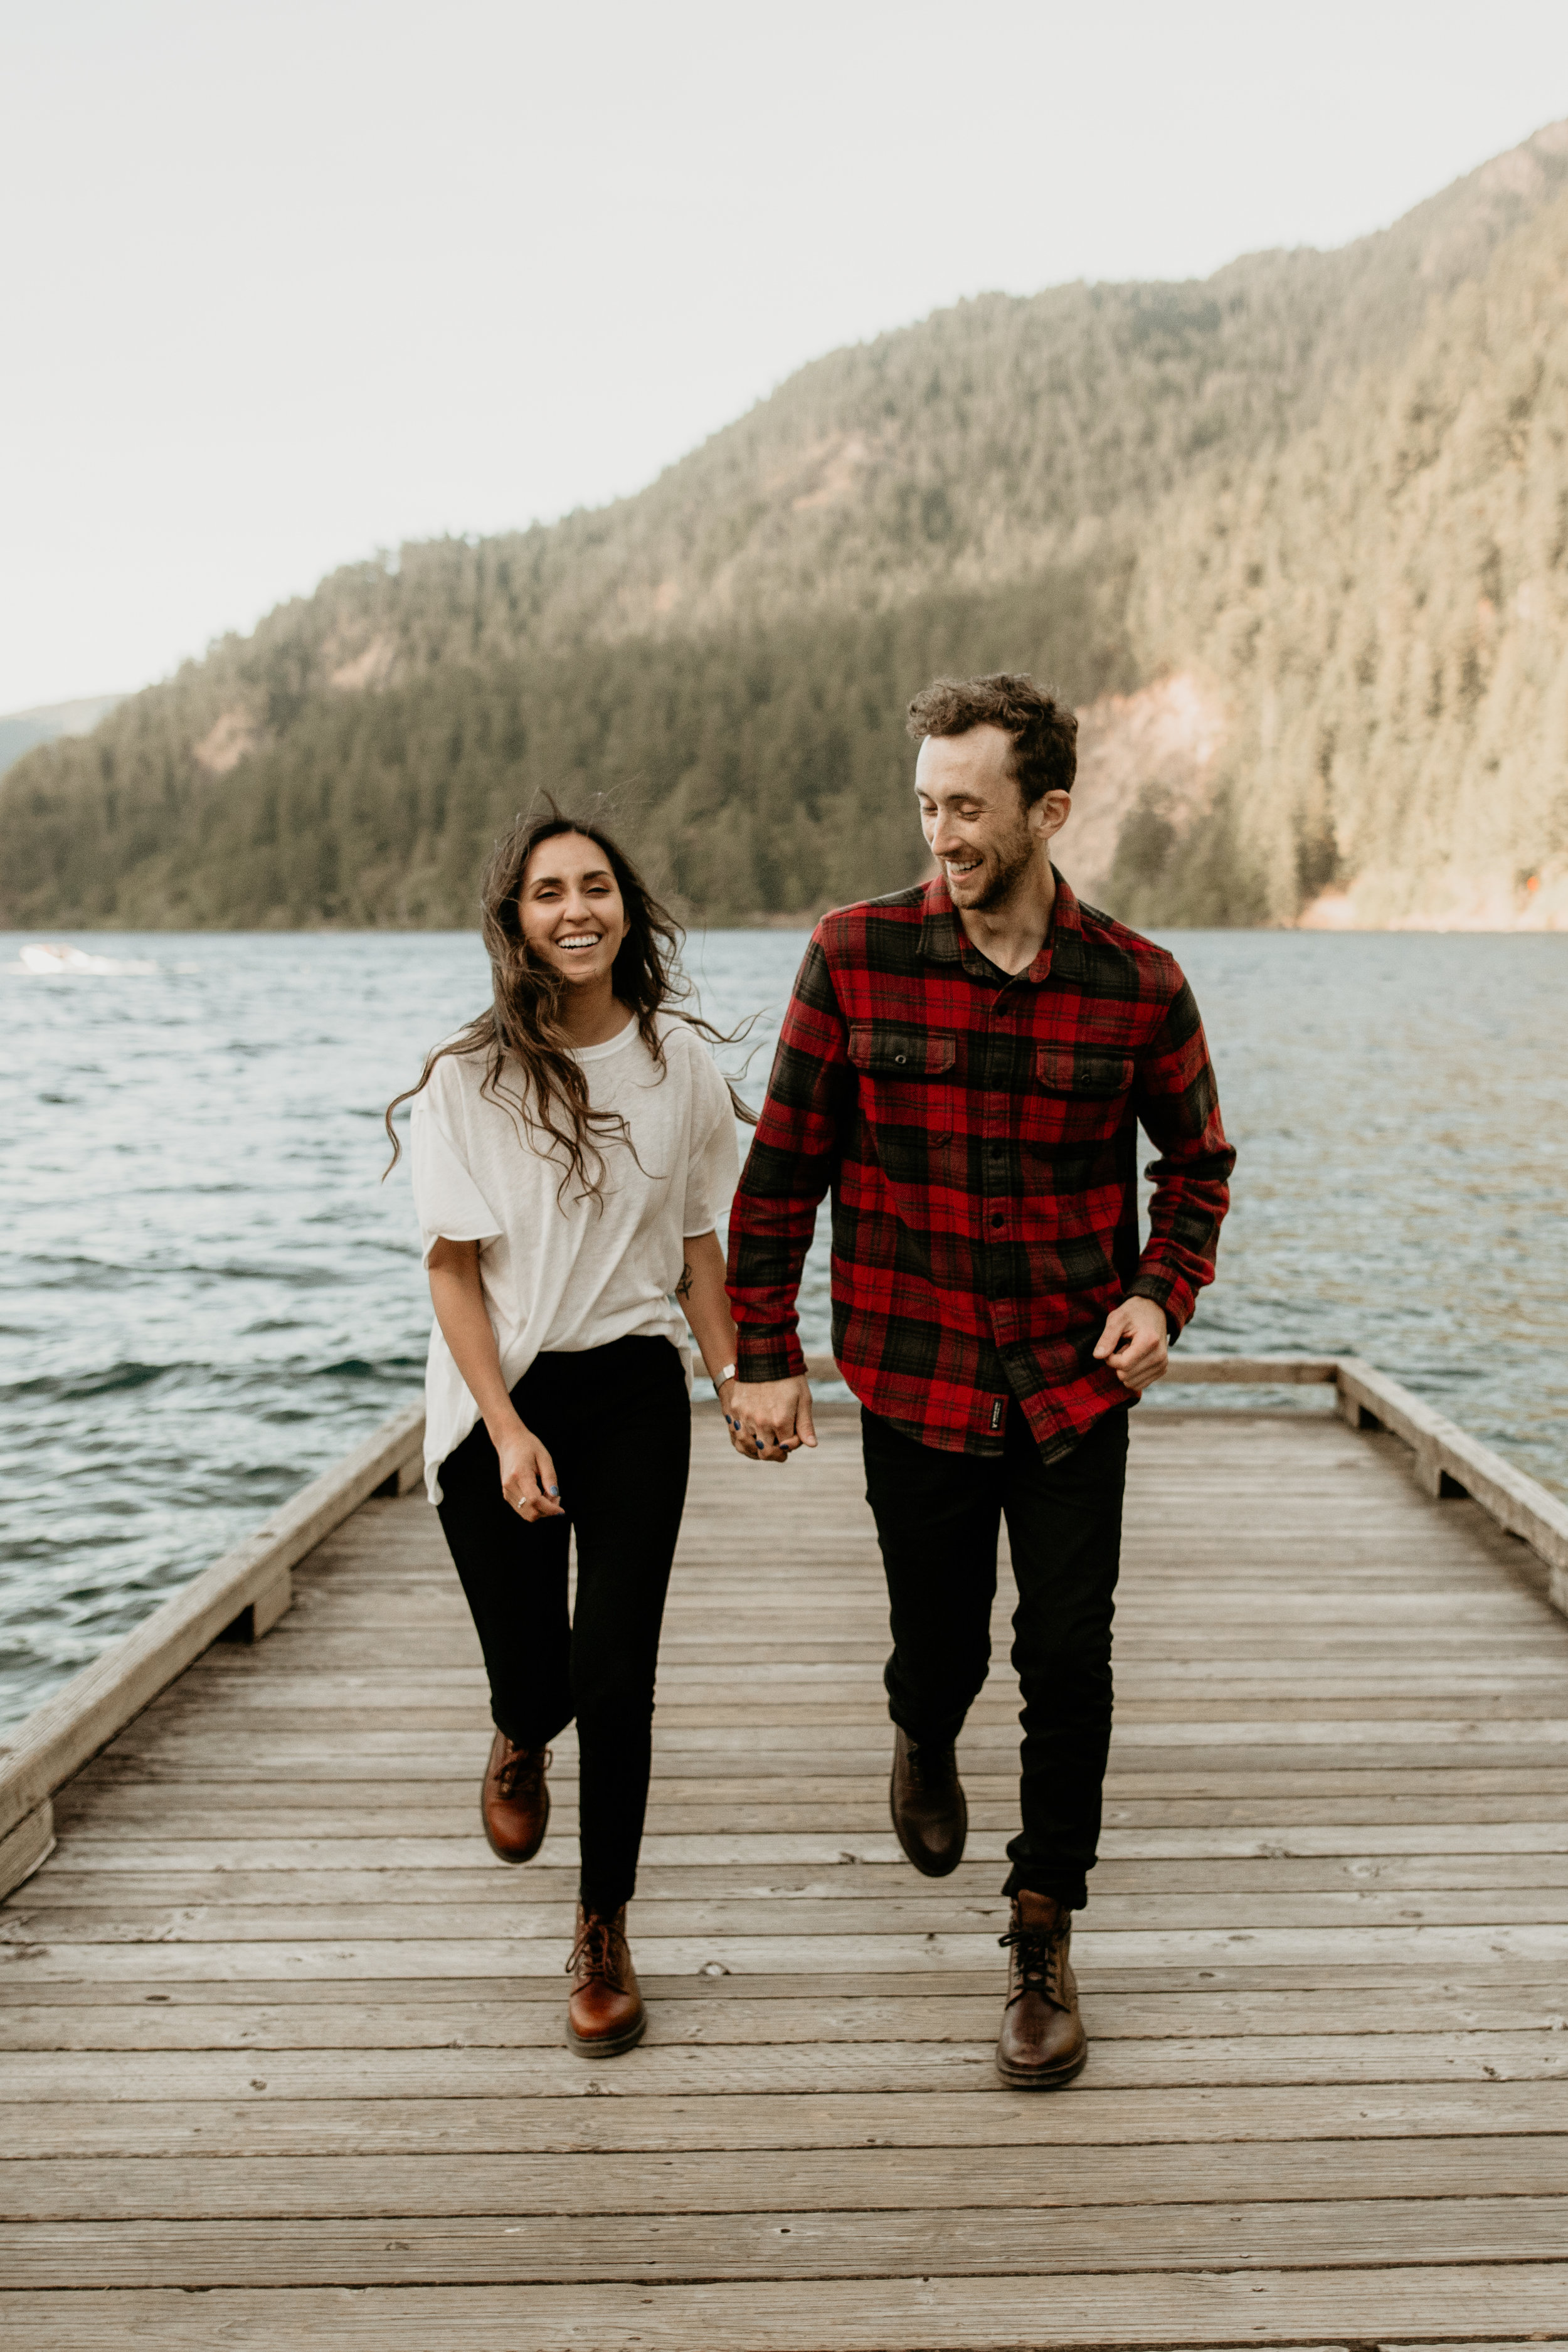 Crescent lake engagement photos – best Seattle elopement photographer - adventure hikes - lake hiking - best engagement photo location - what to wear on your engagement - pnw elopement photographer